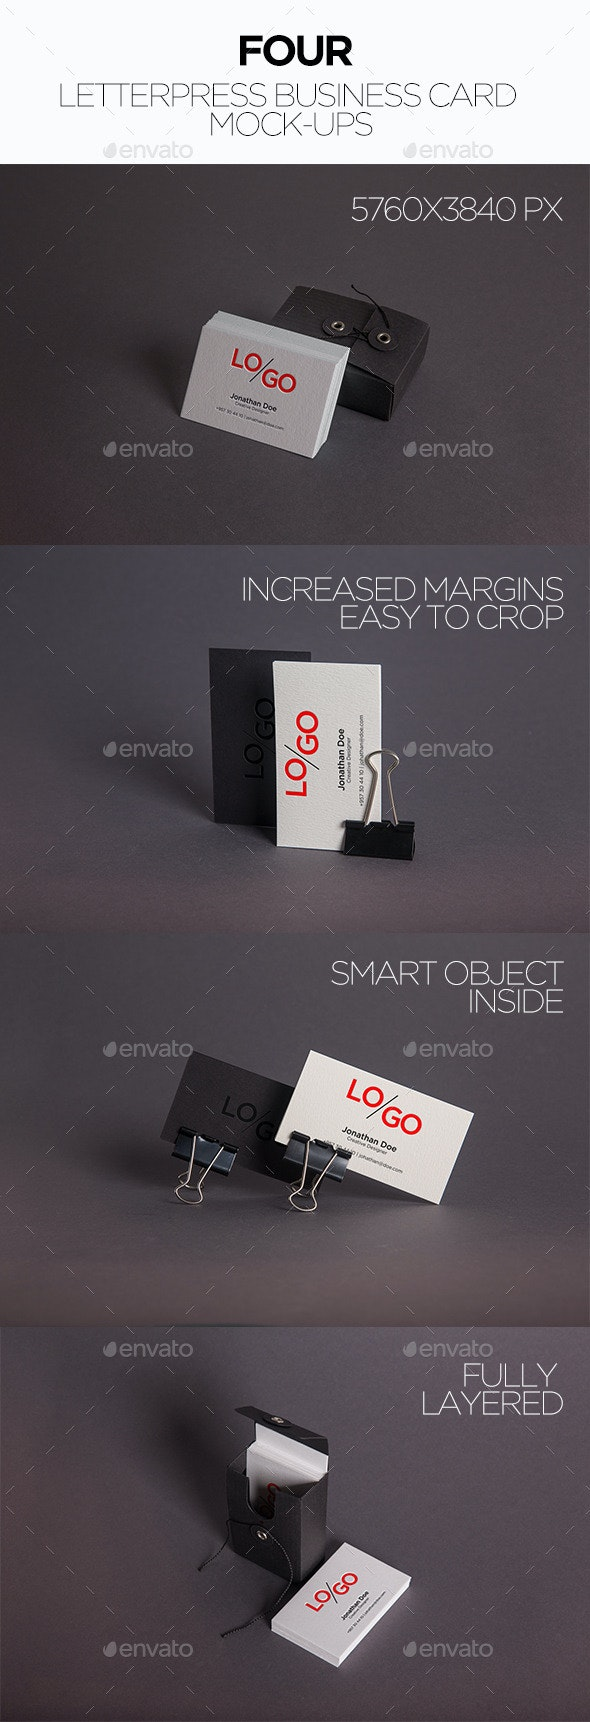 4 Letterpress Business Card Mockups - Business Cards Print